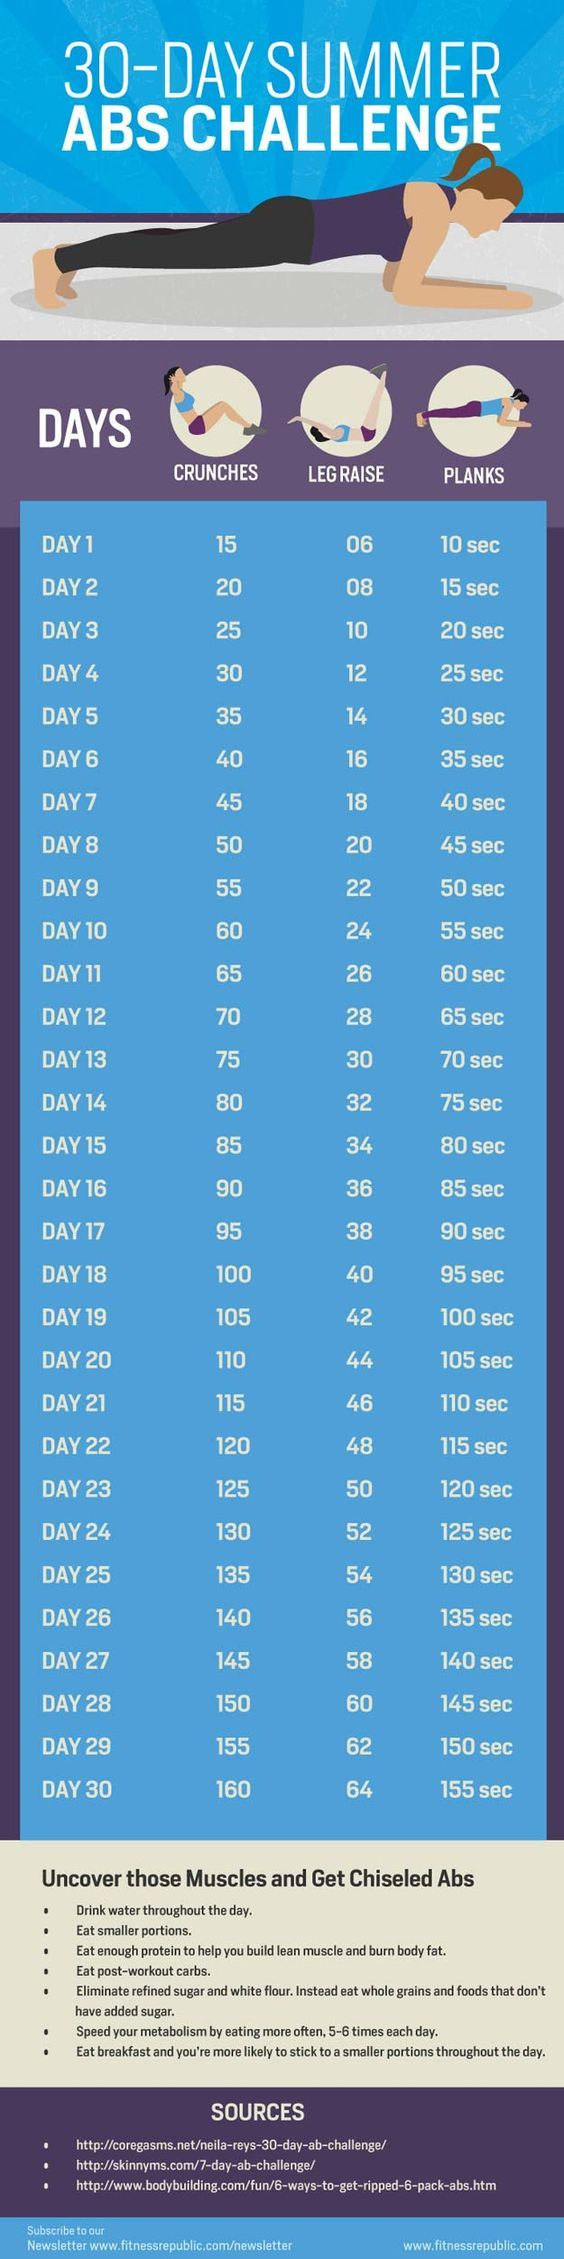 Best Exercises for Abs - 30-Day Summer Abs Challenge - Best Ab Exercises And Ab Workouts For A Flat Stomach, Increased Health Fitness, And Weightless. Ab Exercises For Women, For Men, And For Kids. Gr